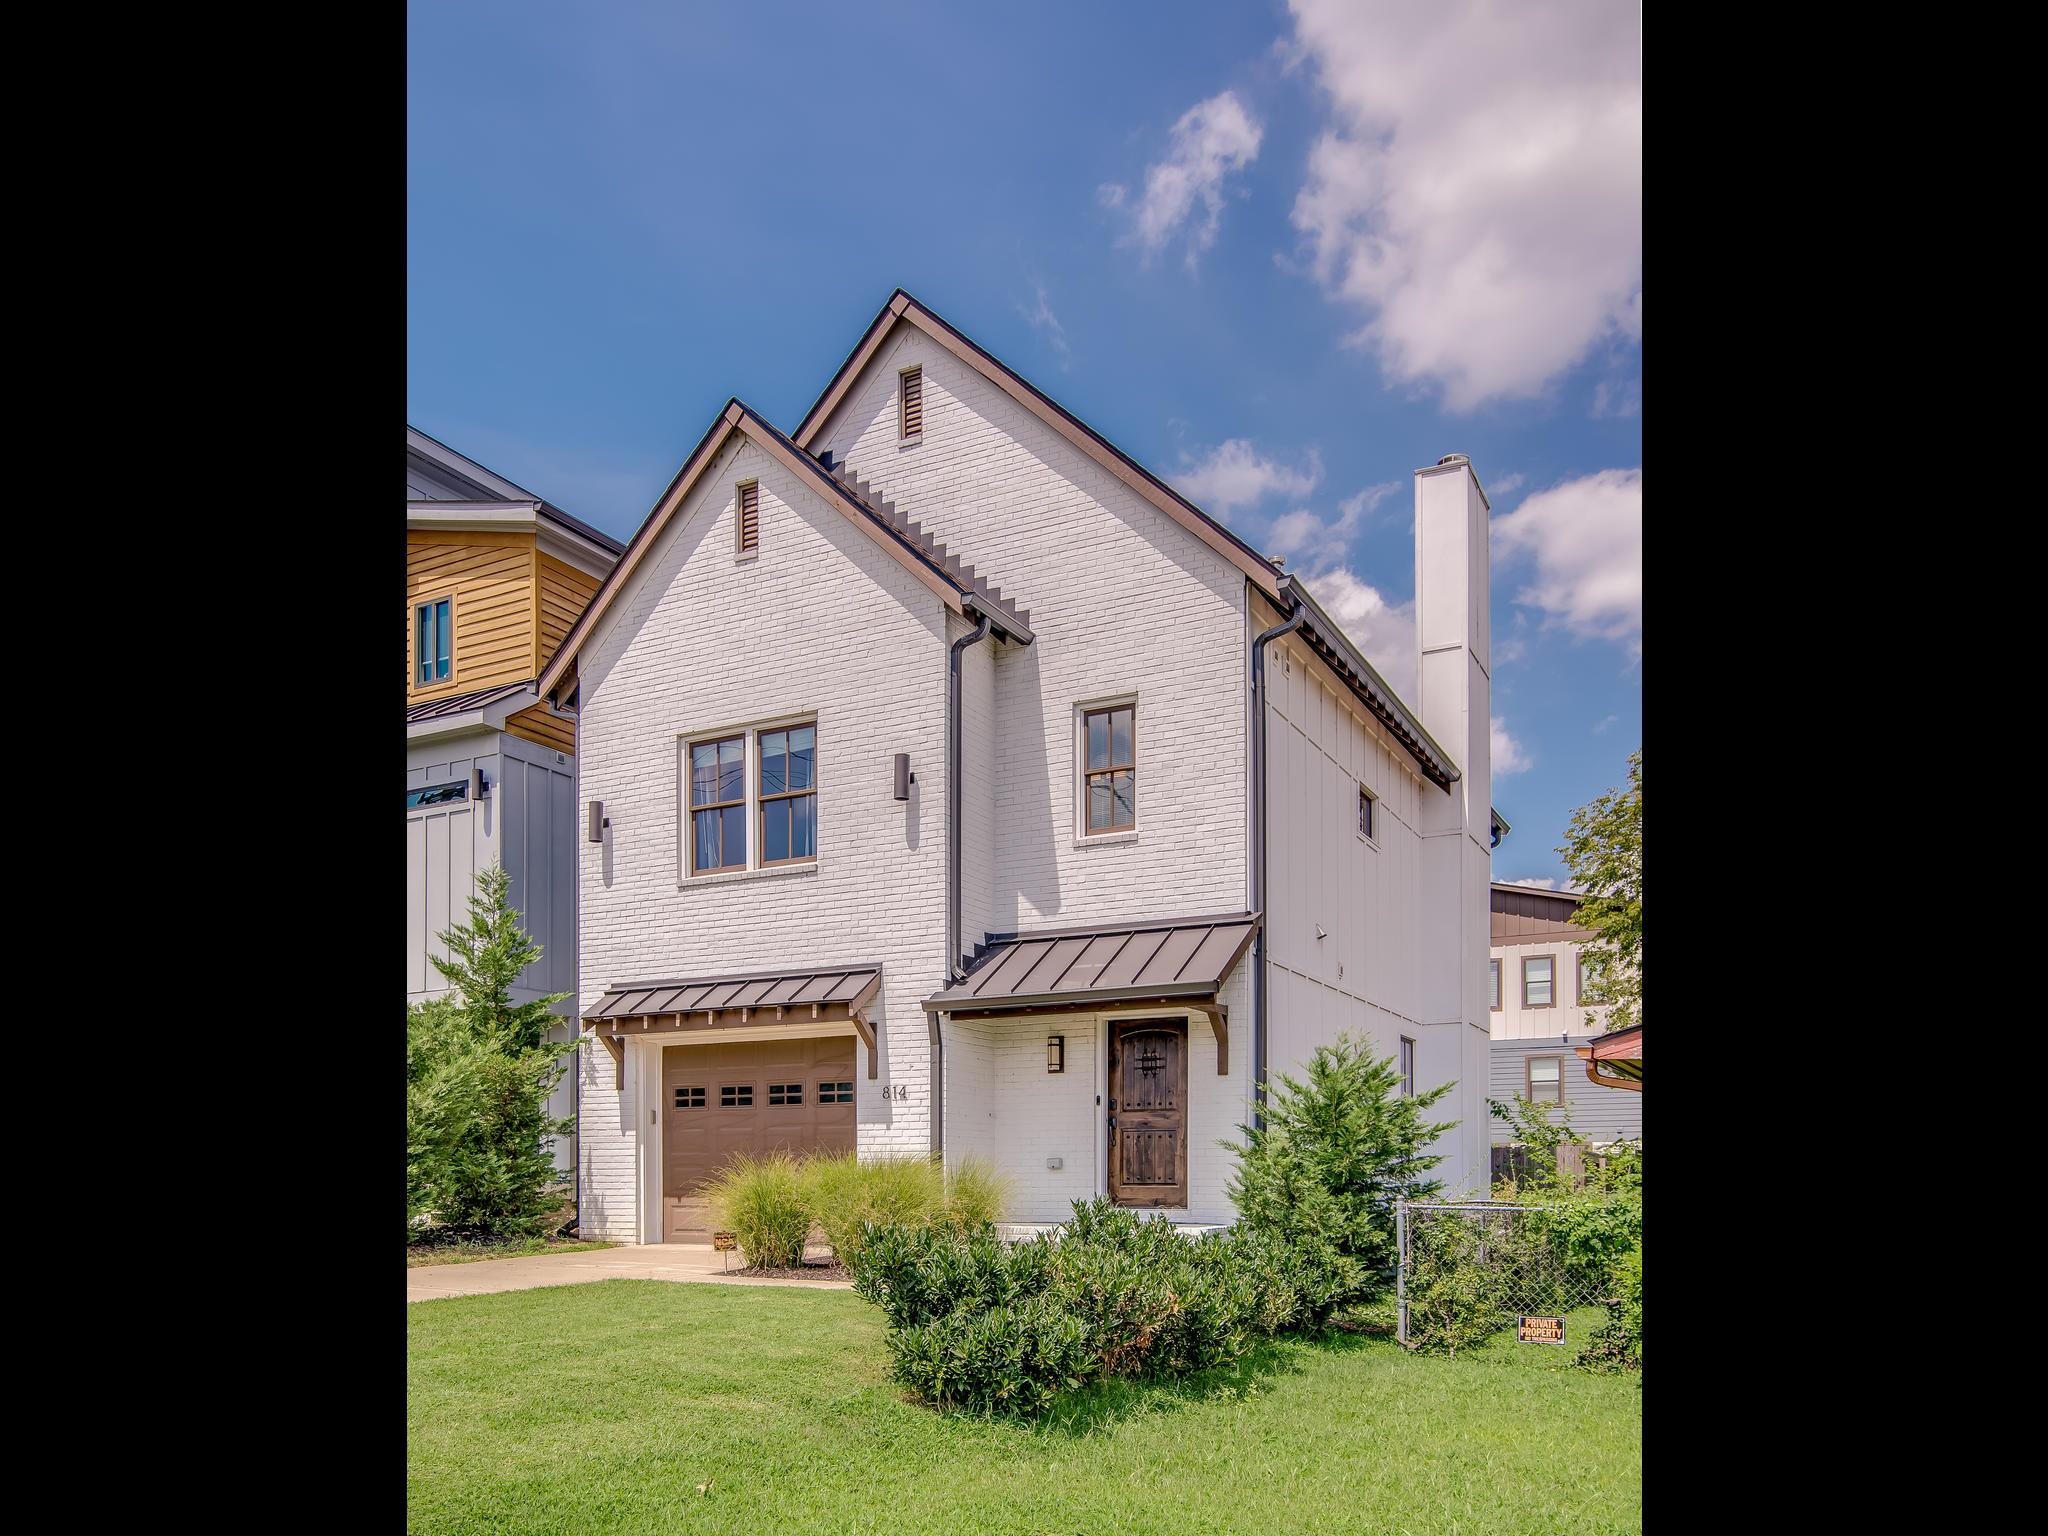 814 Olympic St, Nashville - Midtown in Davidson County County, TN 37203 Home for Sale